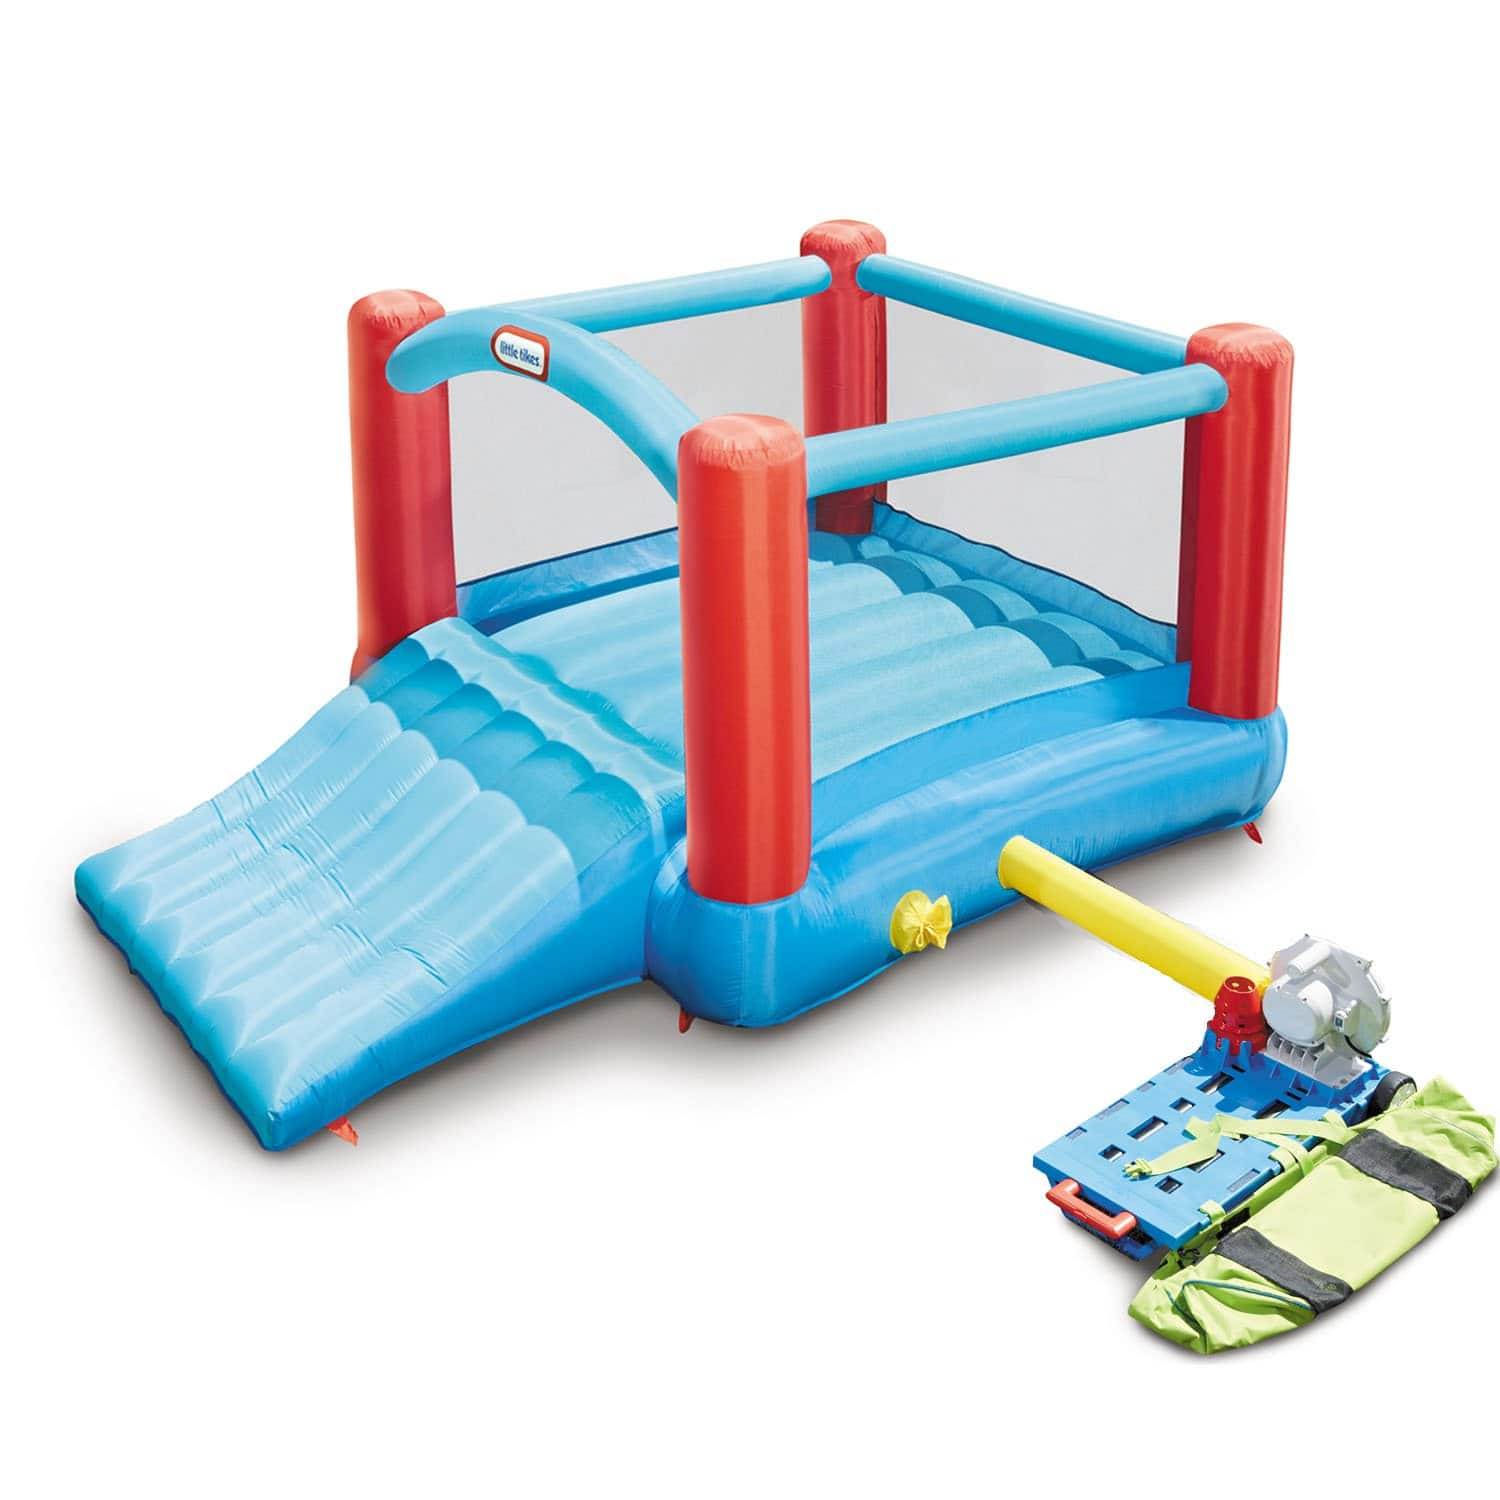 Inflatable Little Tikes Pack n' Go Bouncer $99.00 down from $279 at Walmart.